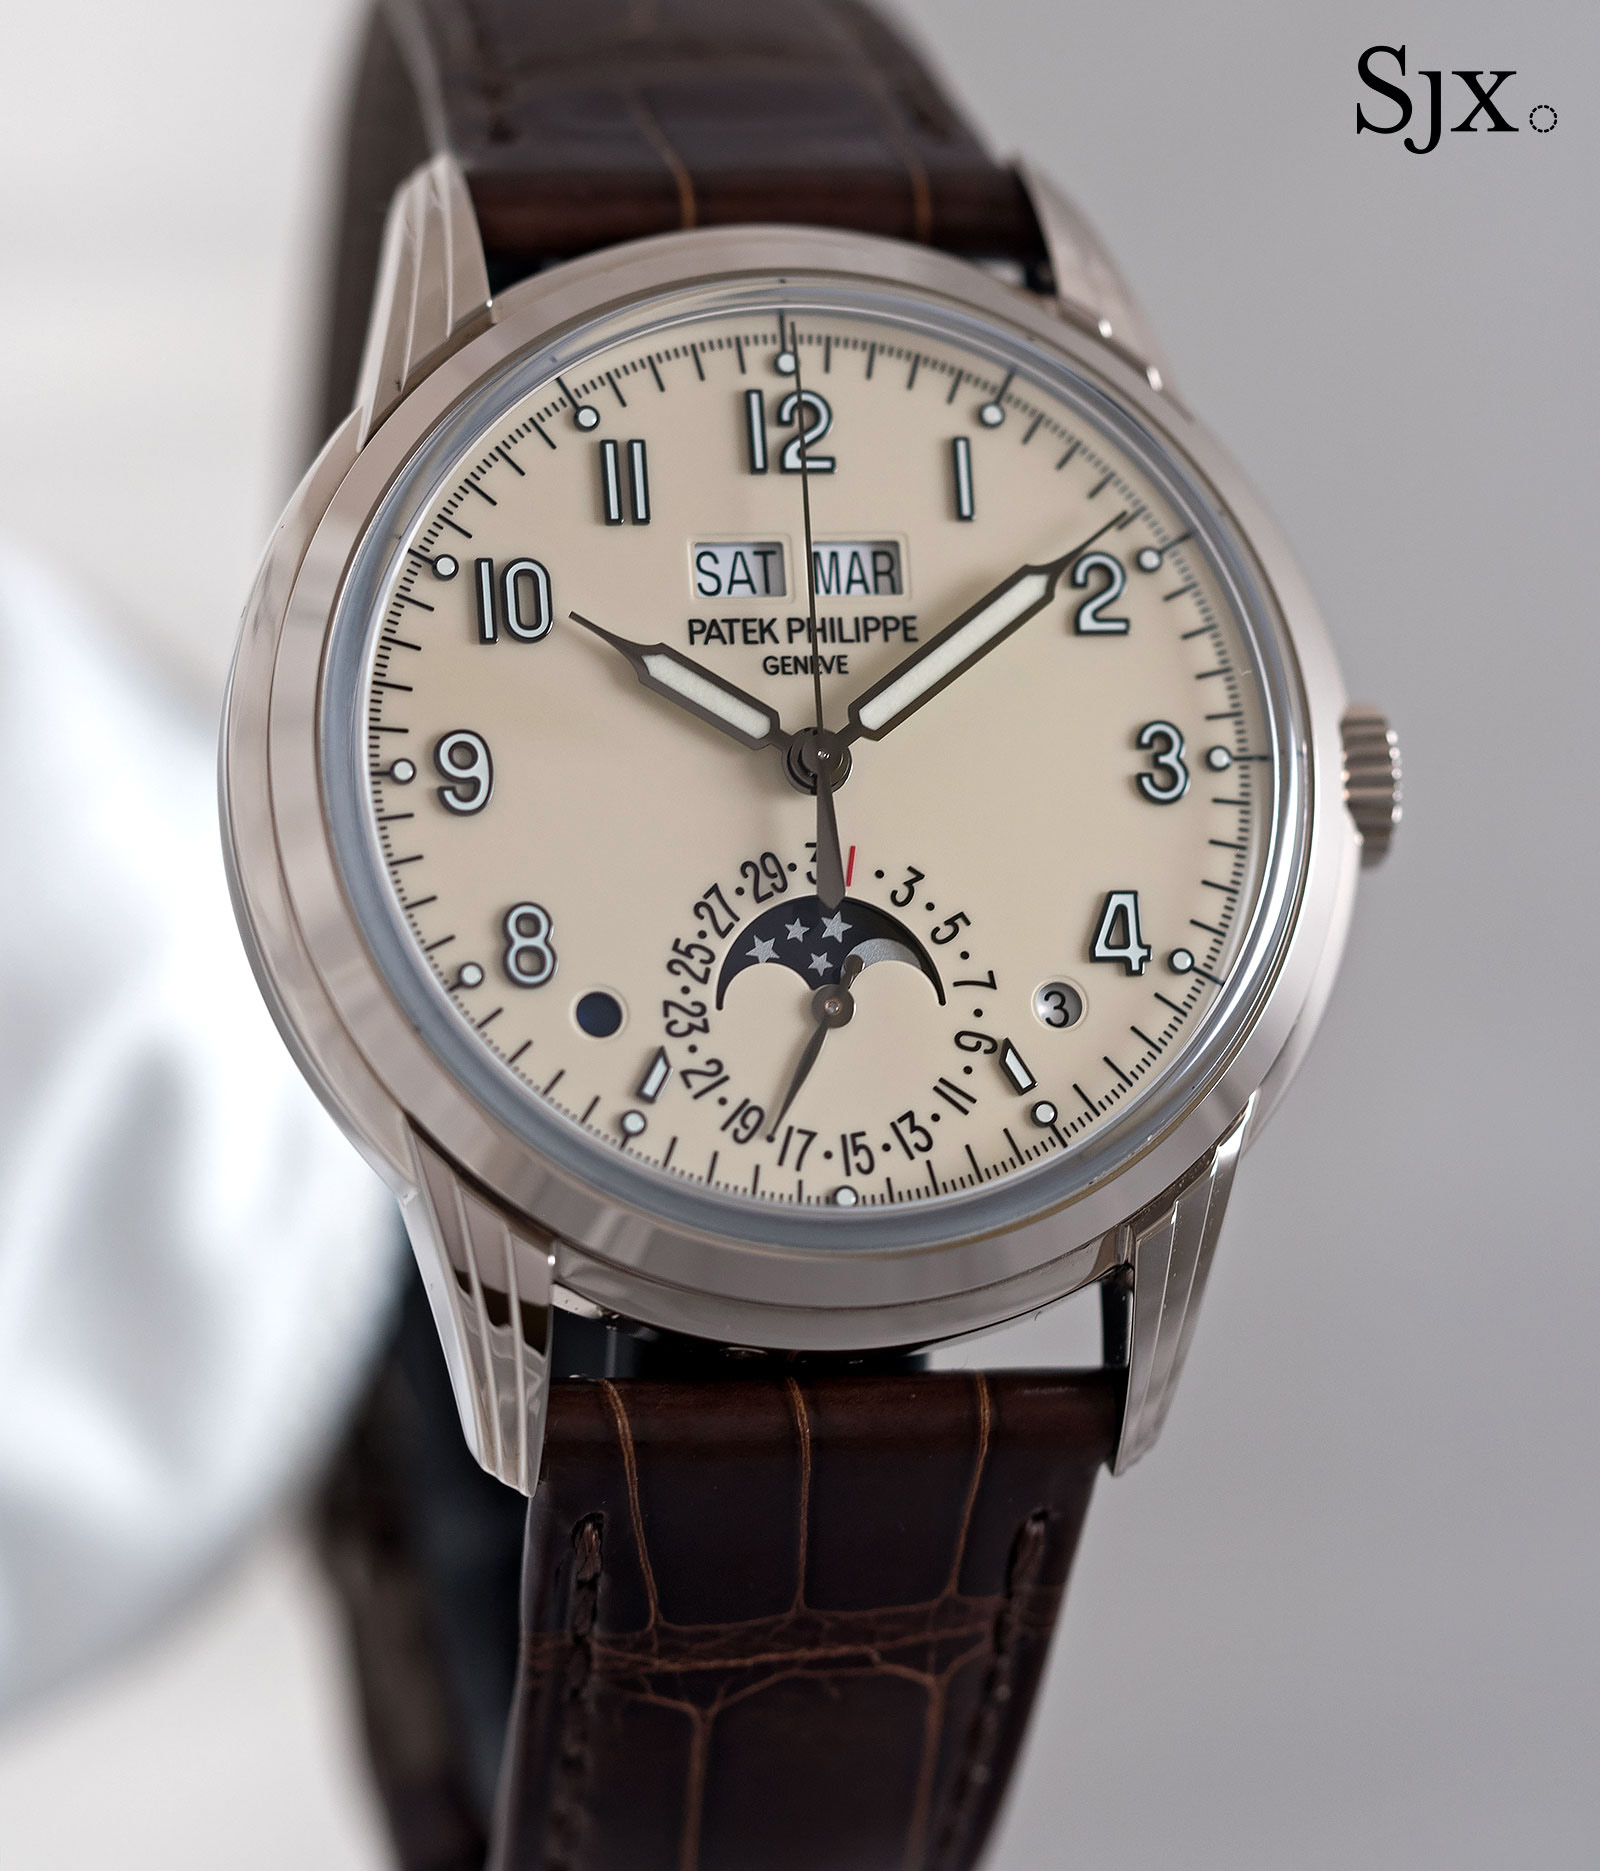 Perpetual Calendar Watch : Hands on with the patek philippe ref g perpetual